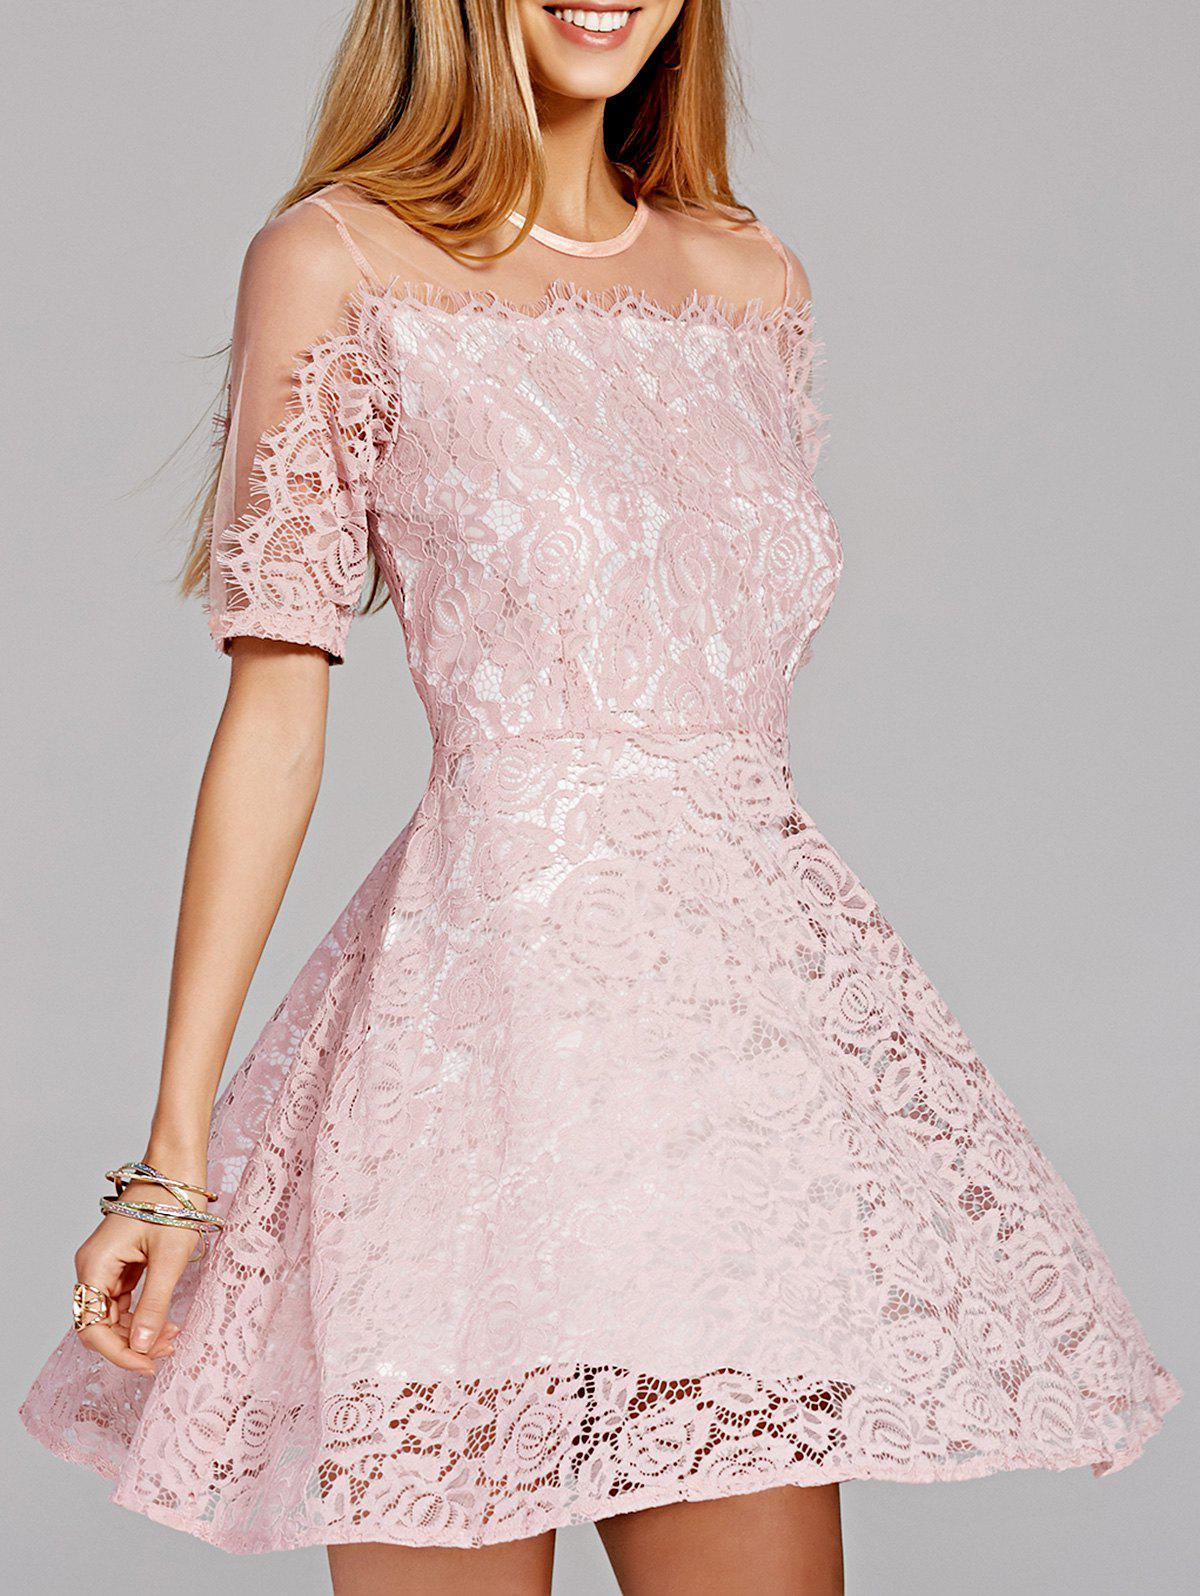 Sweet Gauze Spliced Sheer Fit and Flare Lace Dress For Women